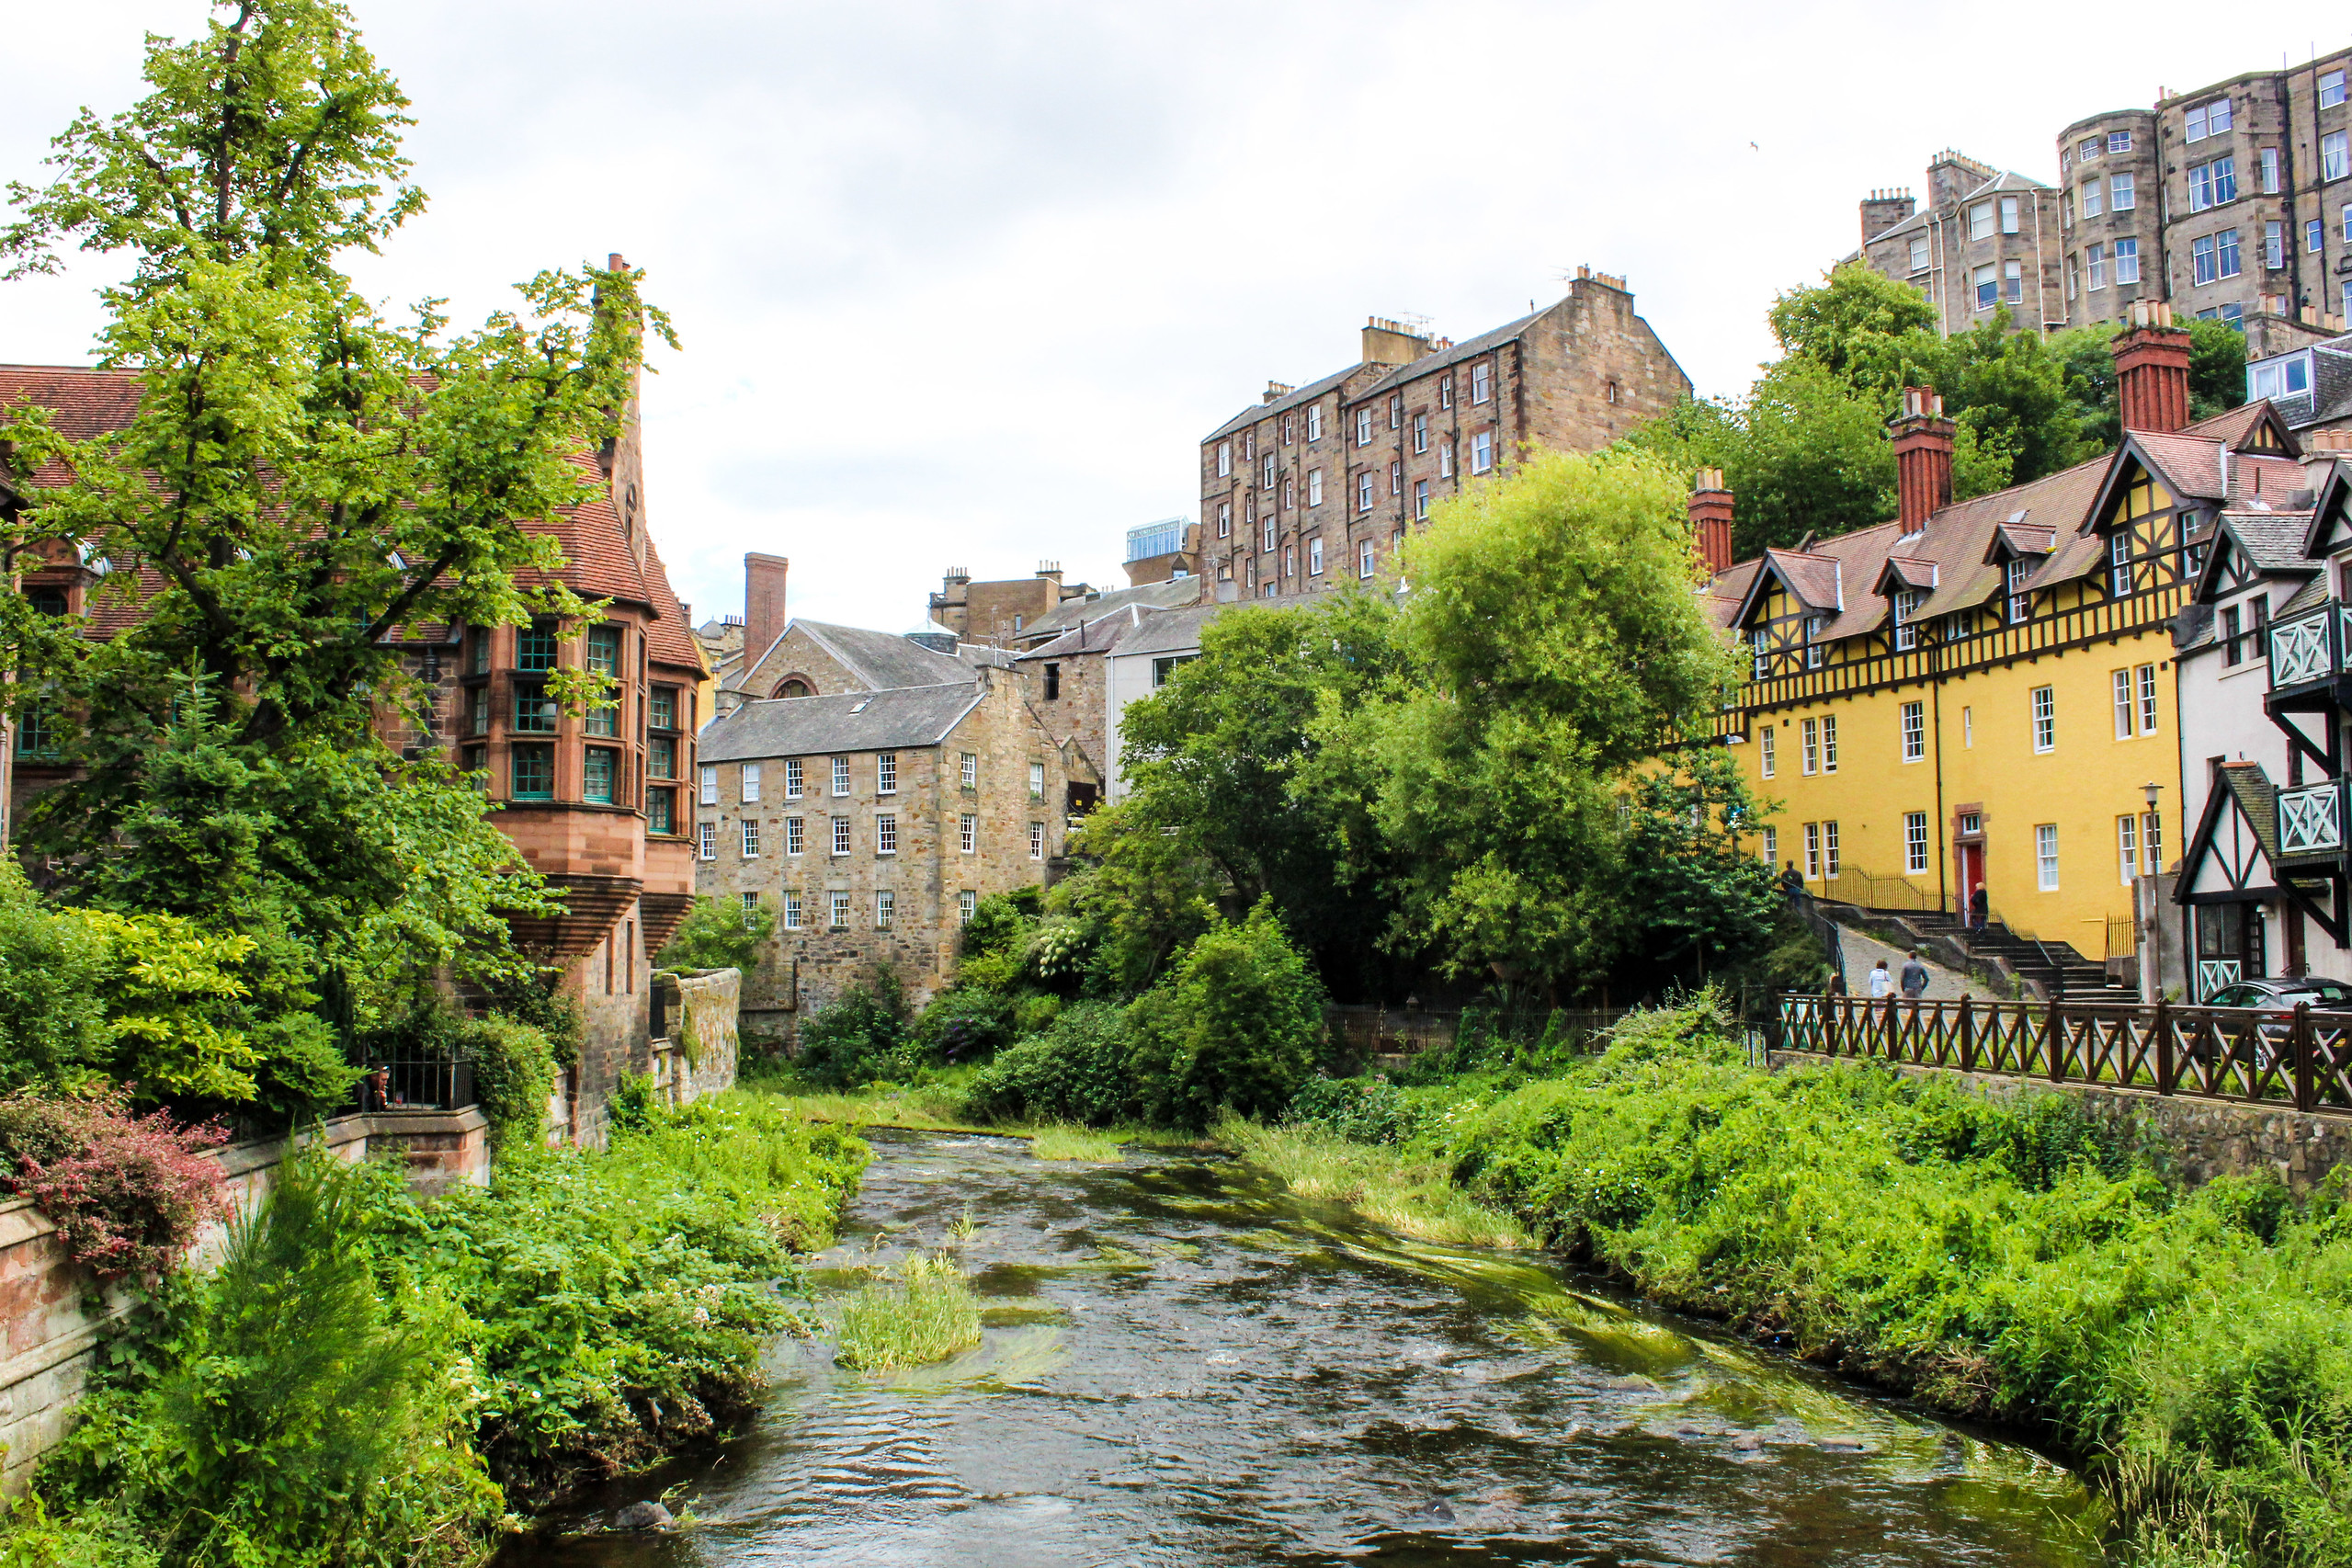 cheap city breaks in Edinburgh are possible. Take a nice walk